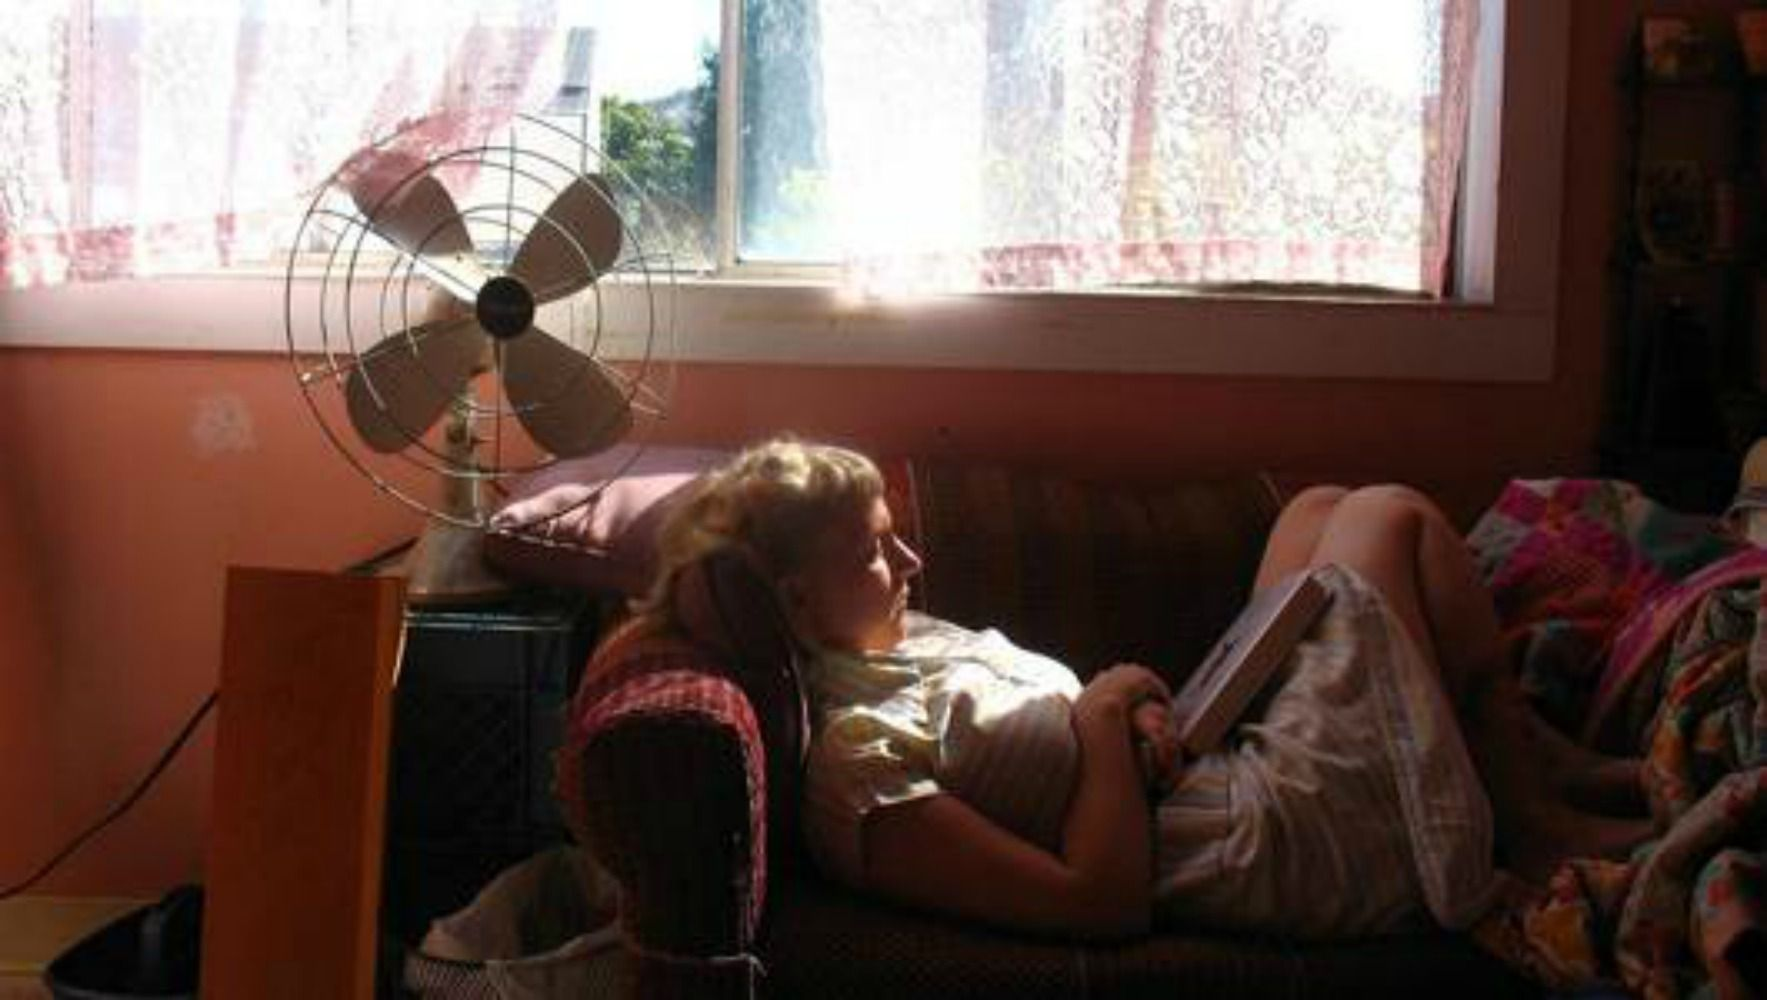 20 ways for renters to stay cool and save money this